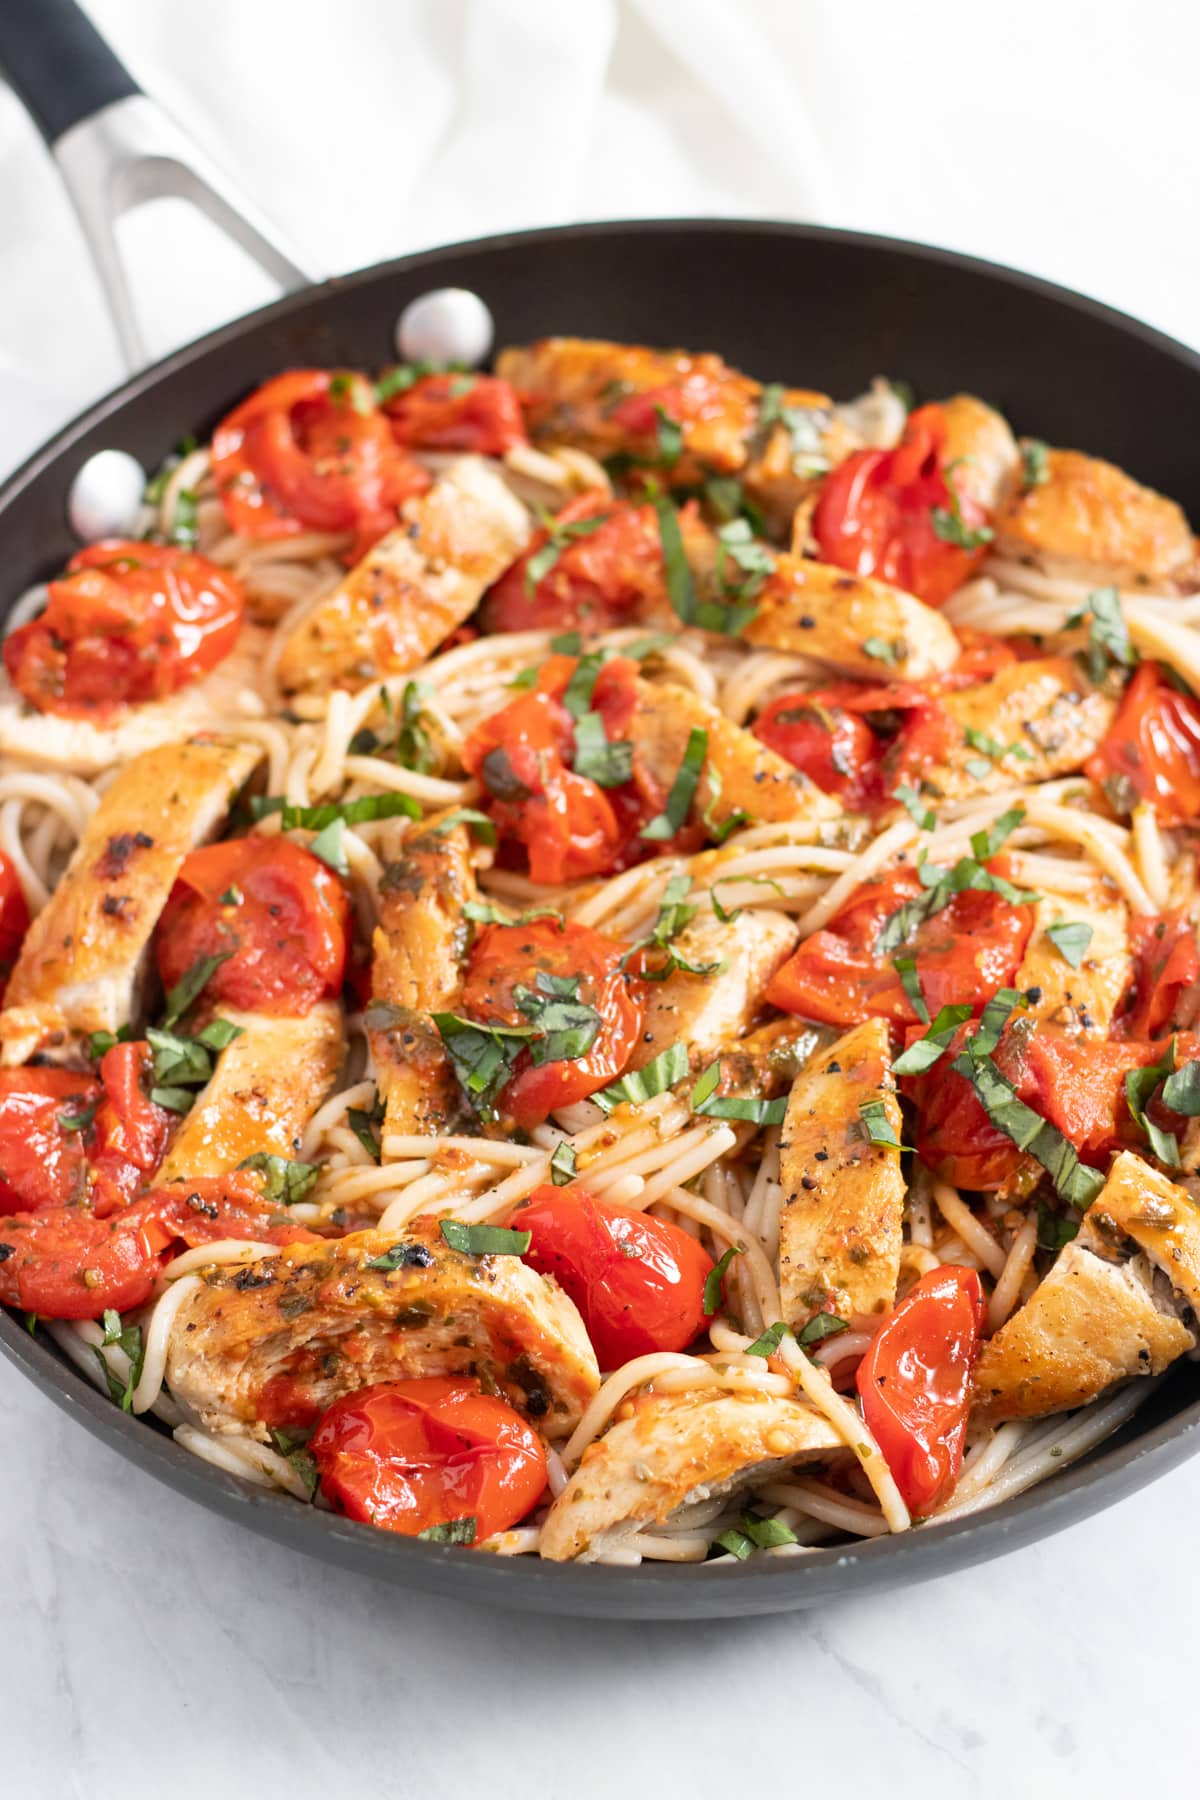 A black skillet filled with a cooked pasta dish made with spaghetti, cherry tomatoes, chicken, and basil.